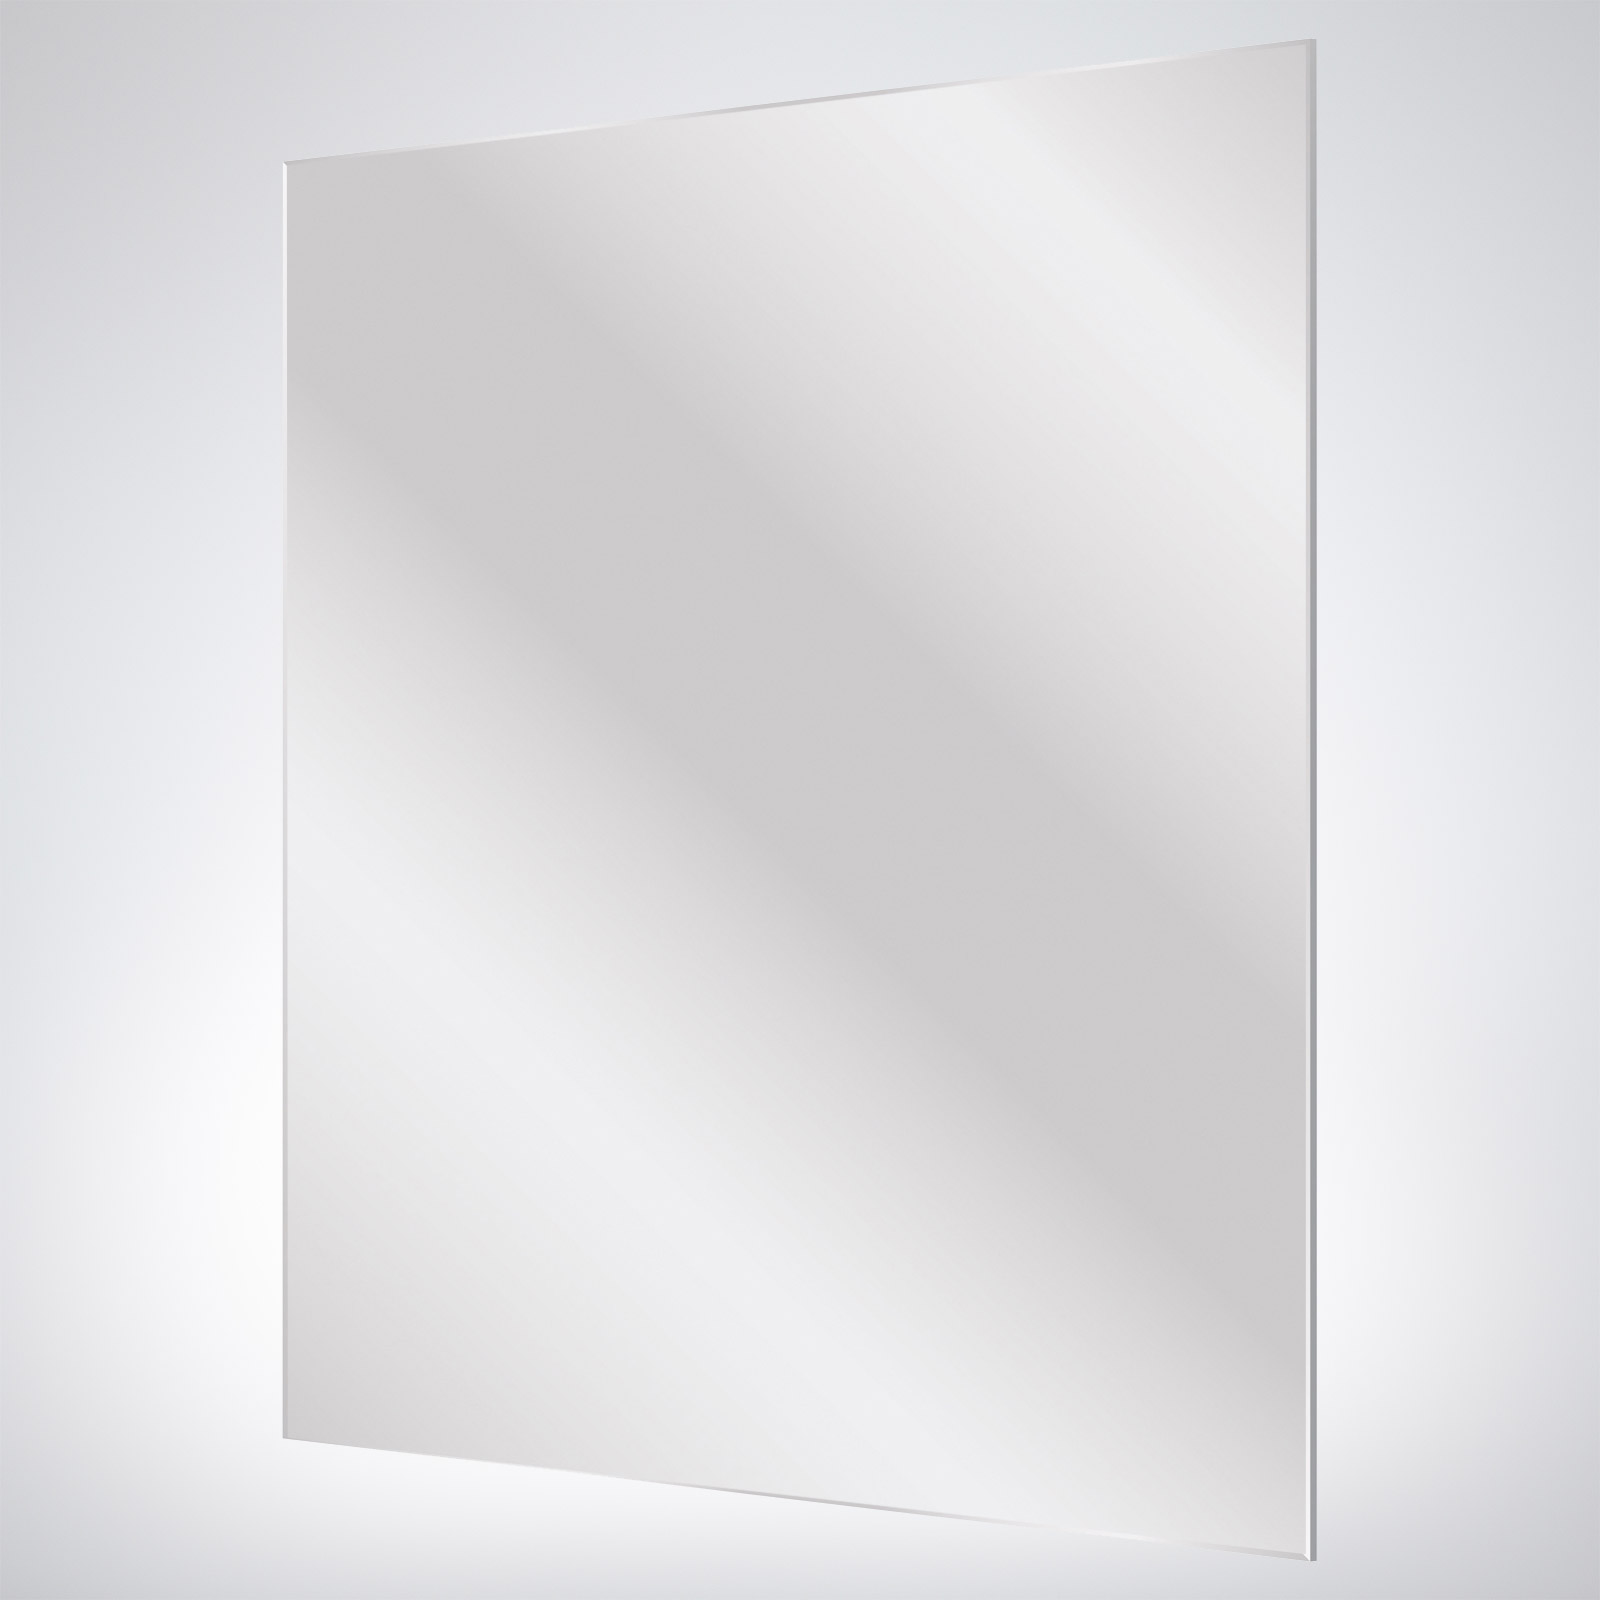 Flat Edge Mirror – 1200 x 900 x 5mm